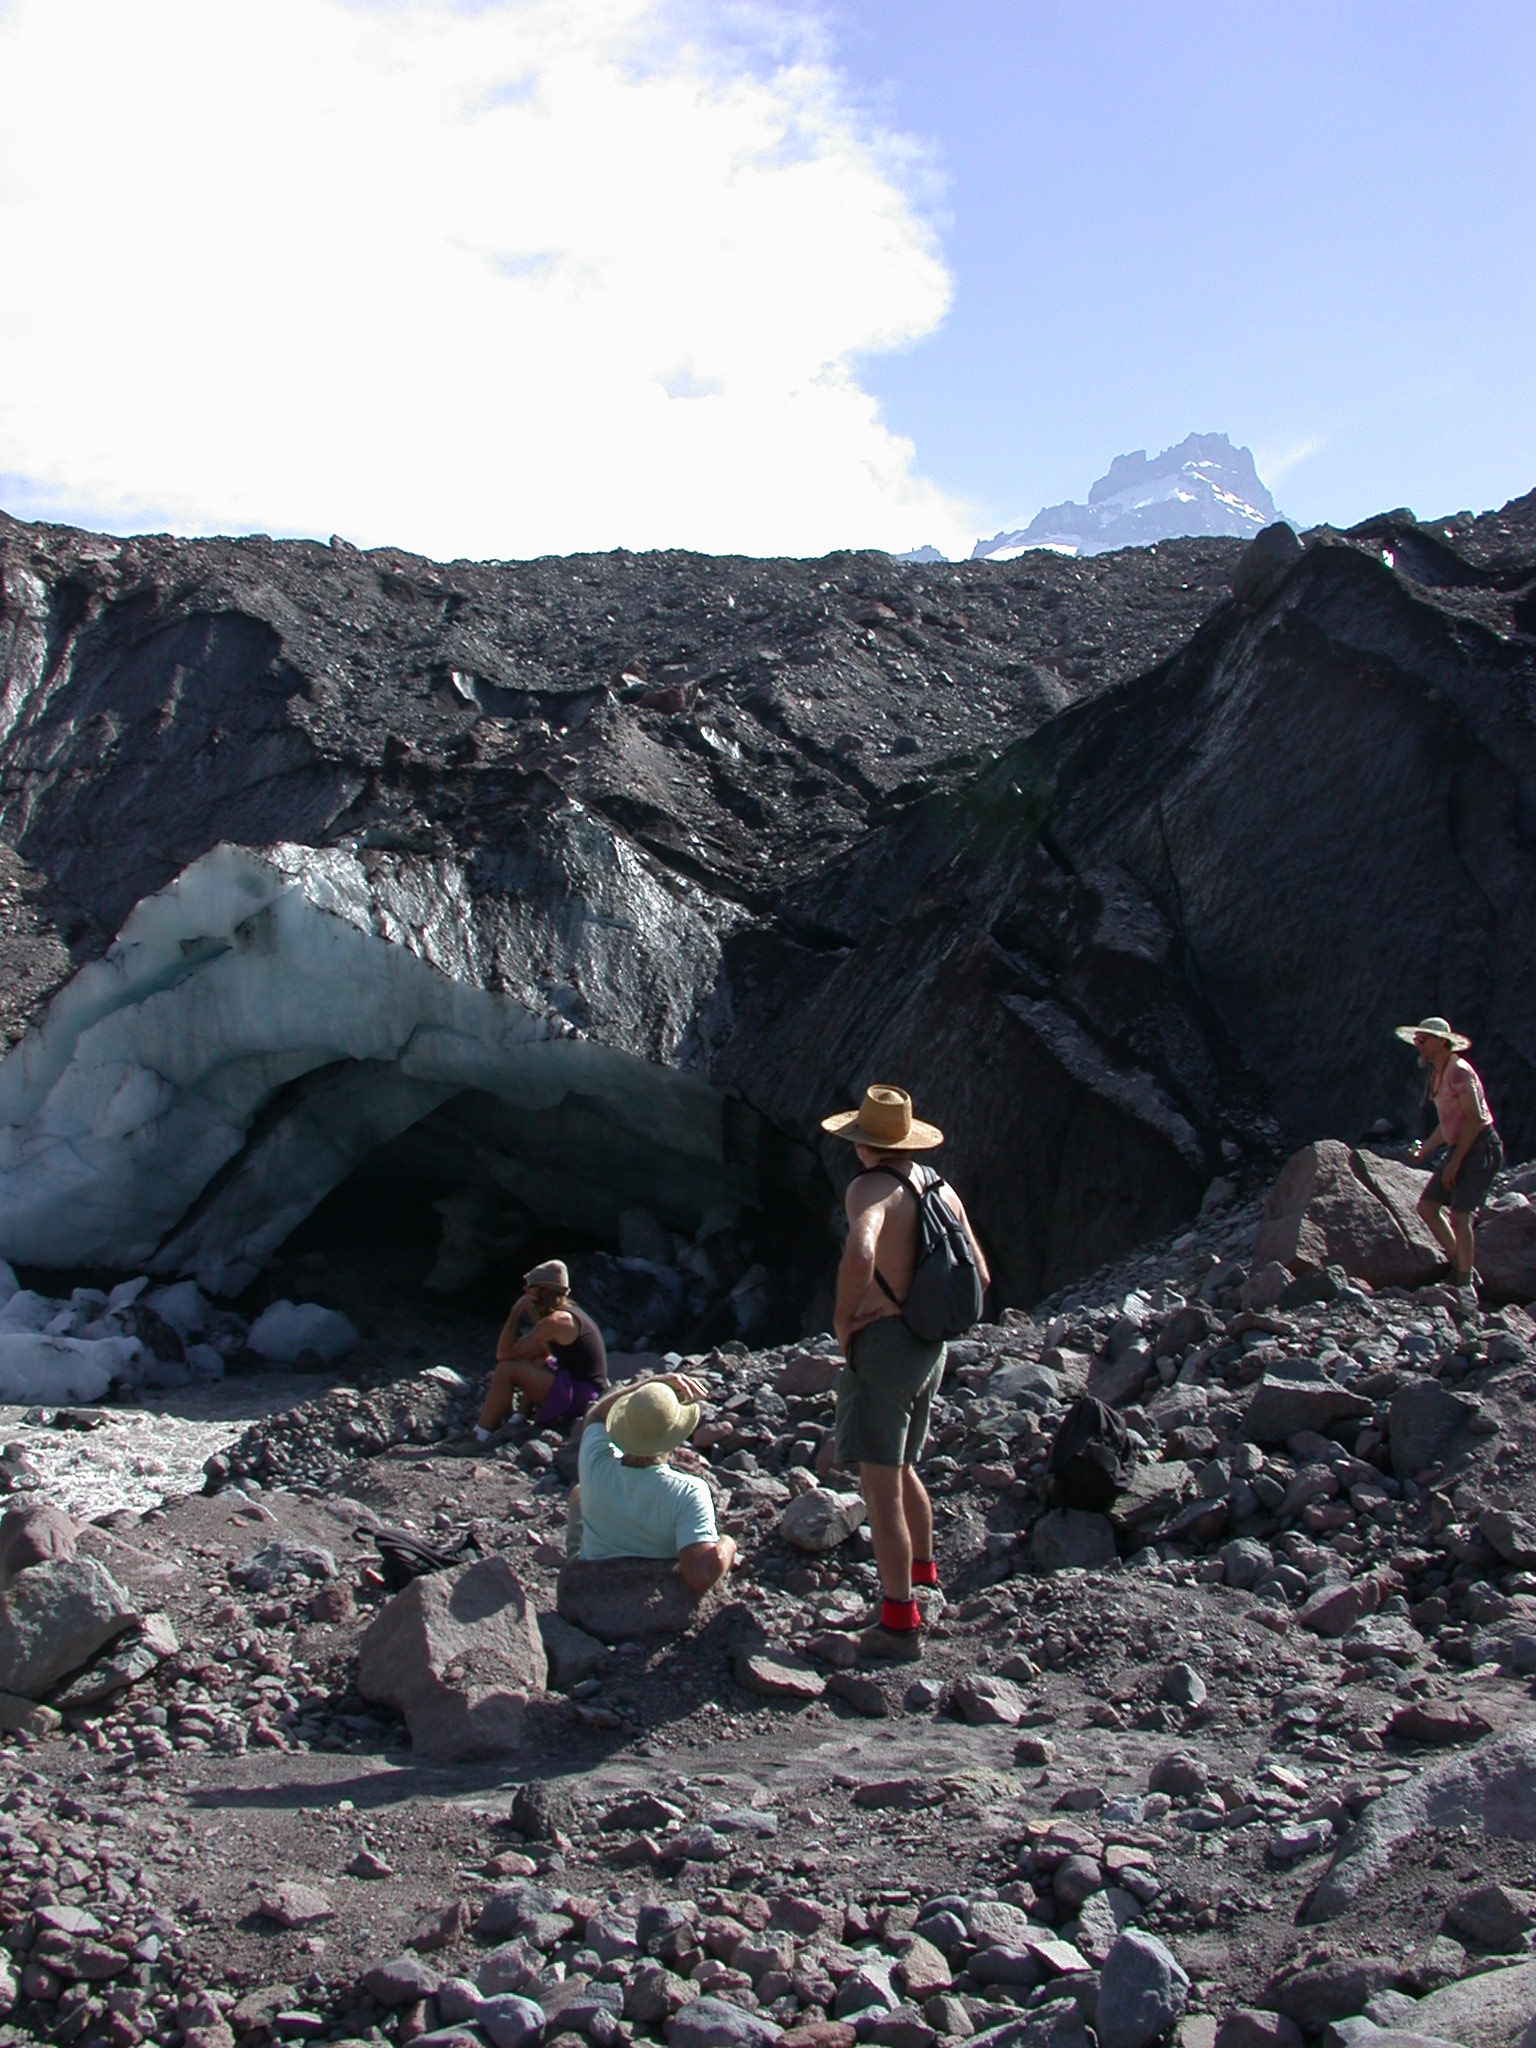 Sierra, Dazzle, Tusk, and Mugwort Watch the Alabaster Ice Cave at the Base of the Glacier on Mount Rainier